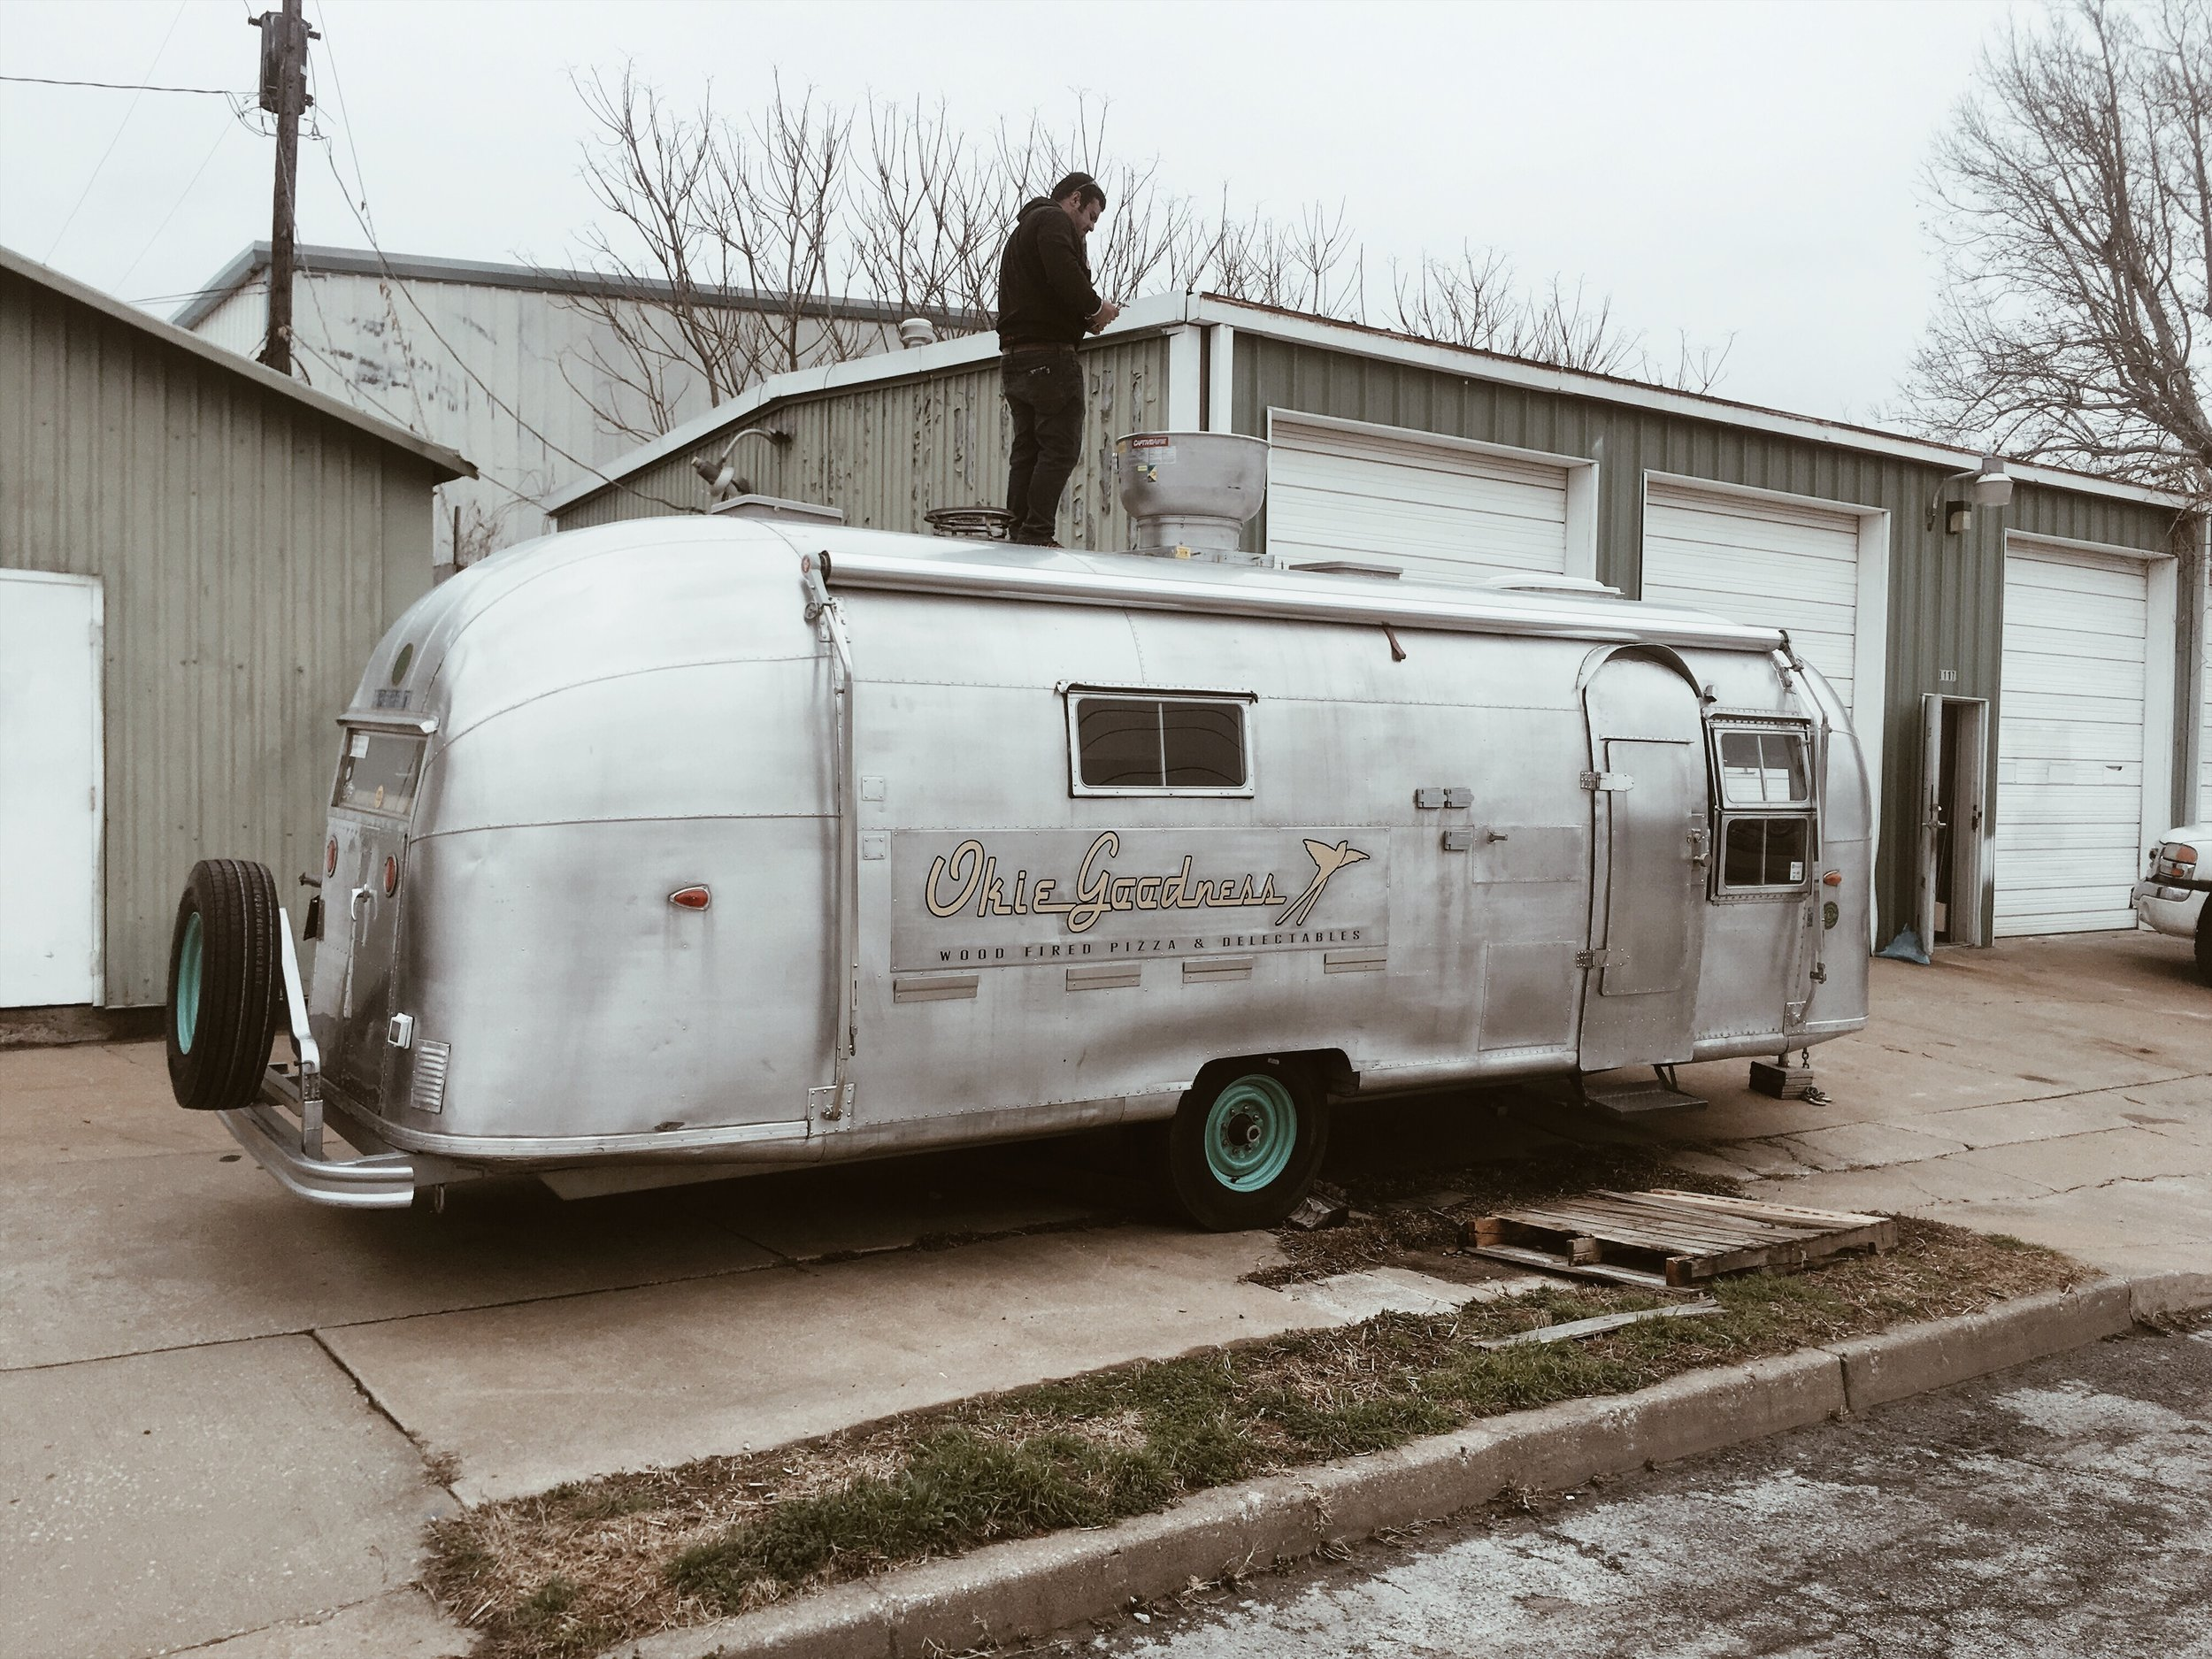 Okie Goodness Airstream Food Truck pic one .JPG